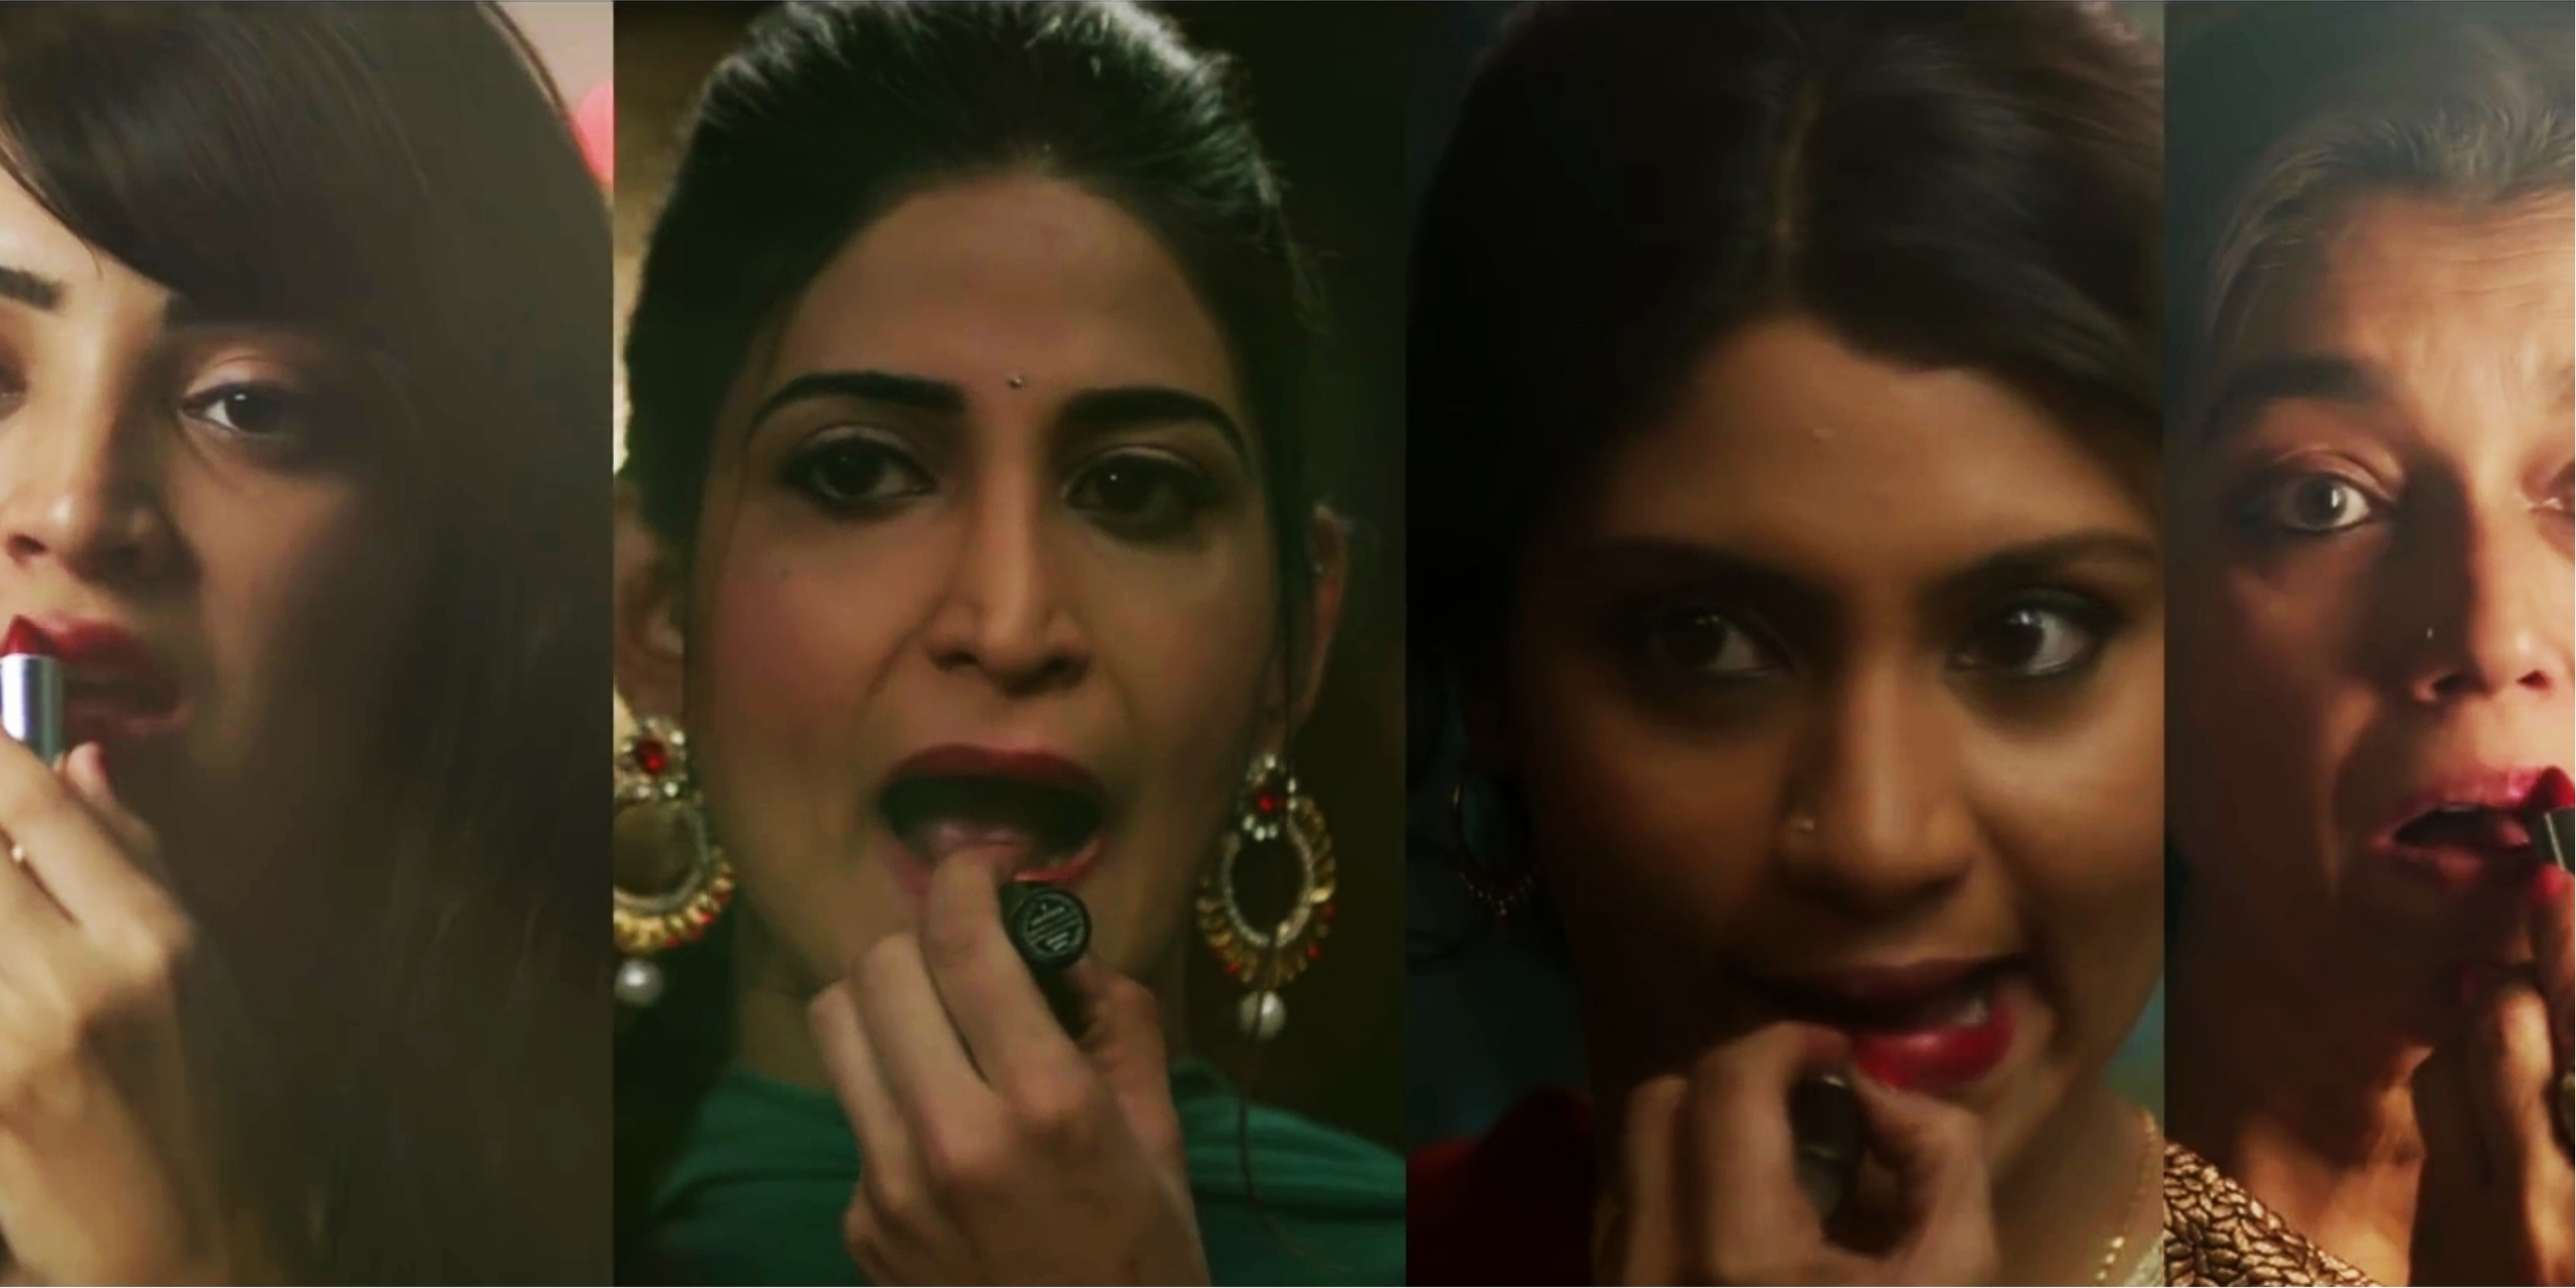 http://bollyworm.com/wp-content/uploads/2017/08/Lipstick-under-my-burkha-1.jpg